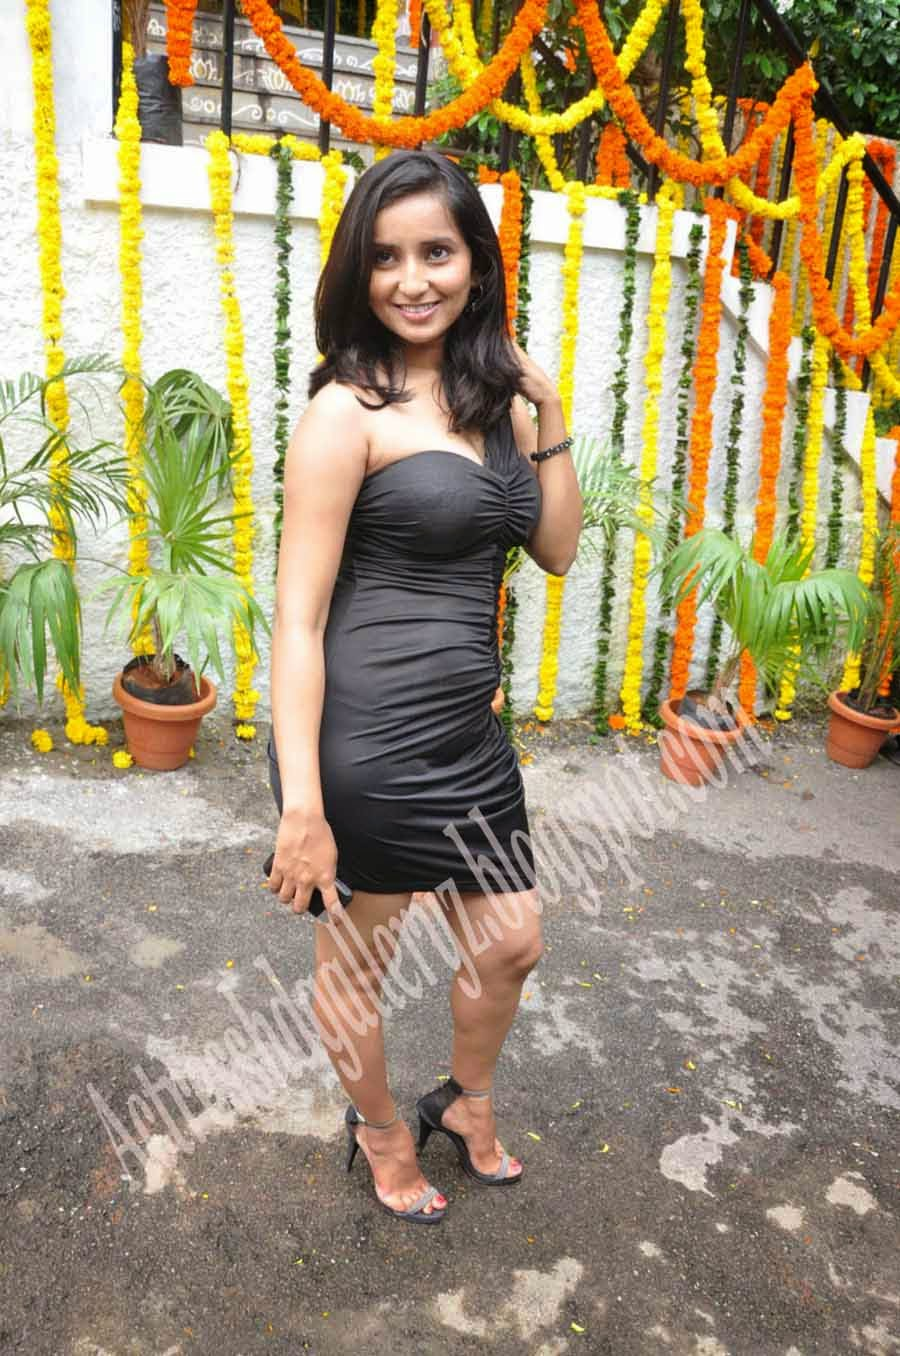 Visakha singh, V, Visakha singh Hot pics, Actress, Actress HD Photo Gallery, HD Actress Gallery, latest Actress HD Photo Gallery, Latest actress Stills, Telugu Movie Actress, Tollywood Actress, Hot Images, spicy images,